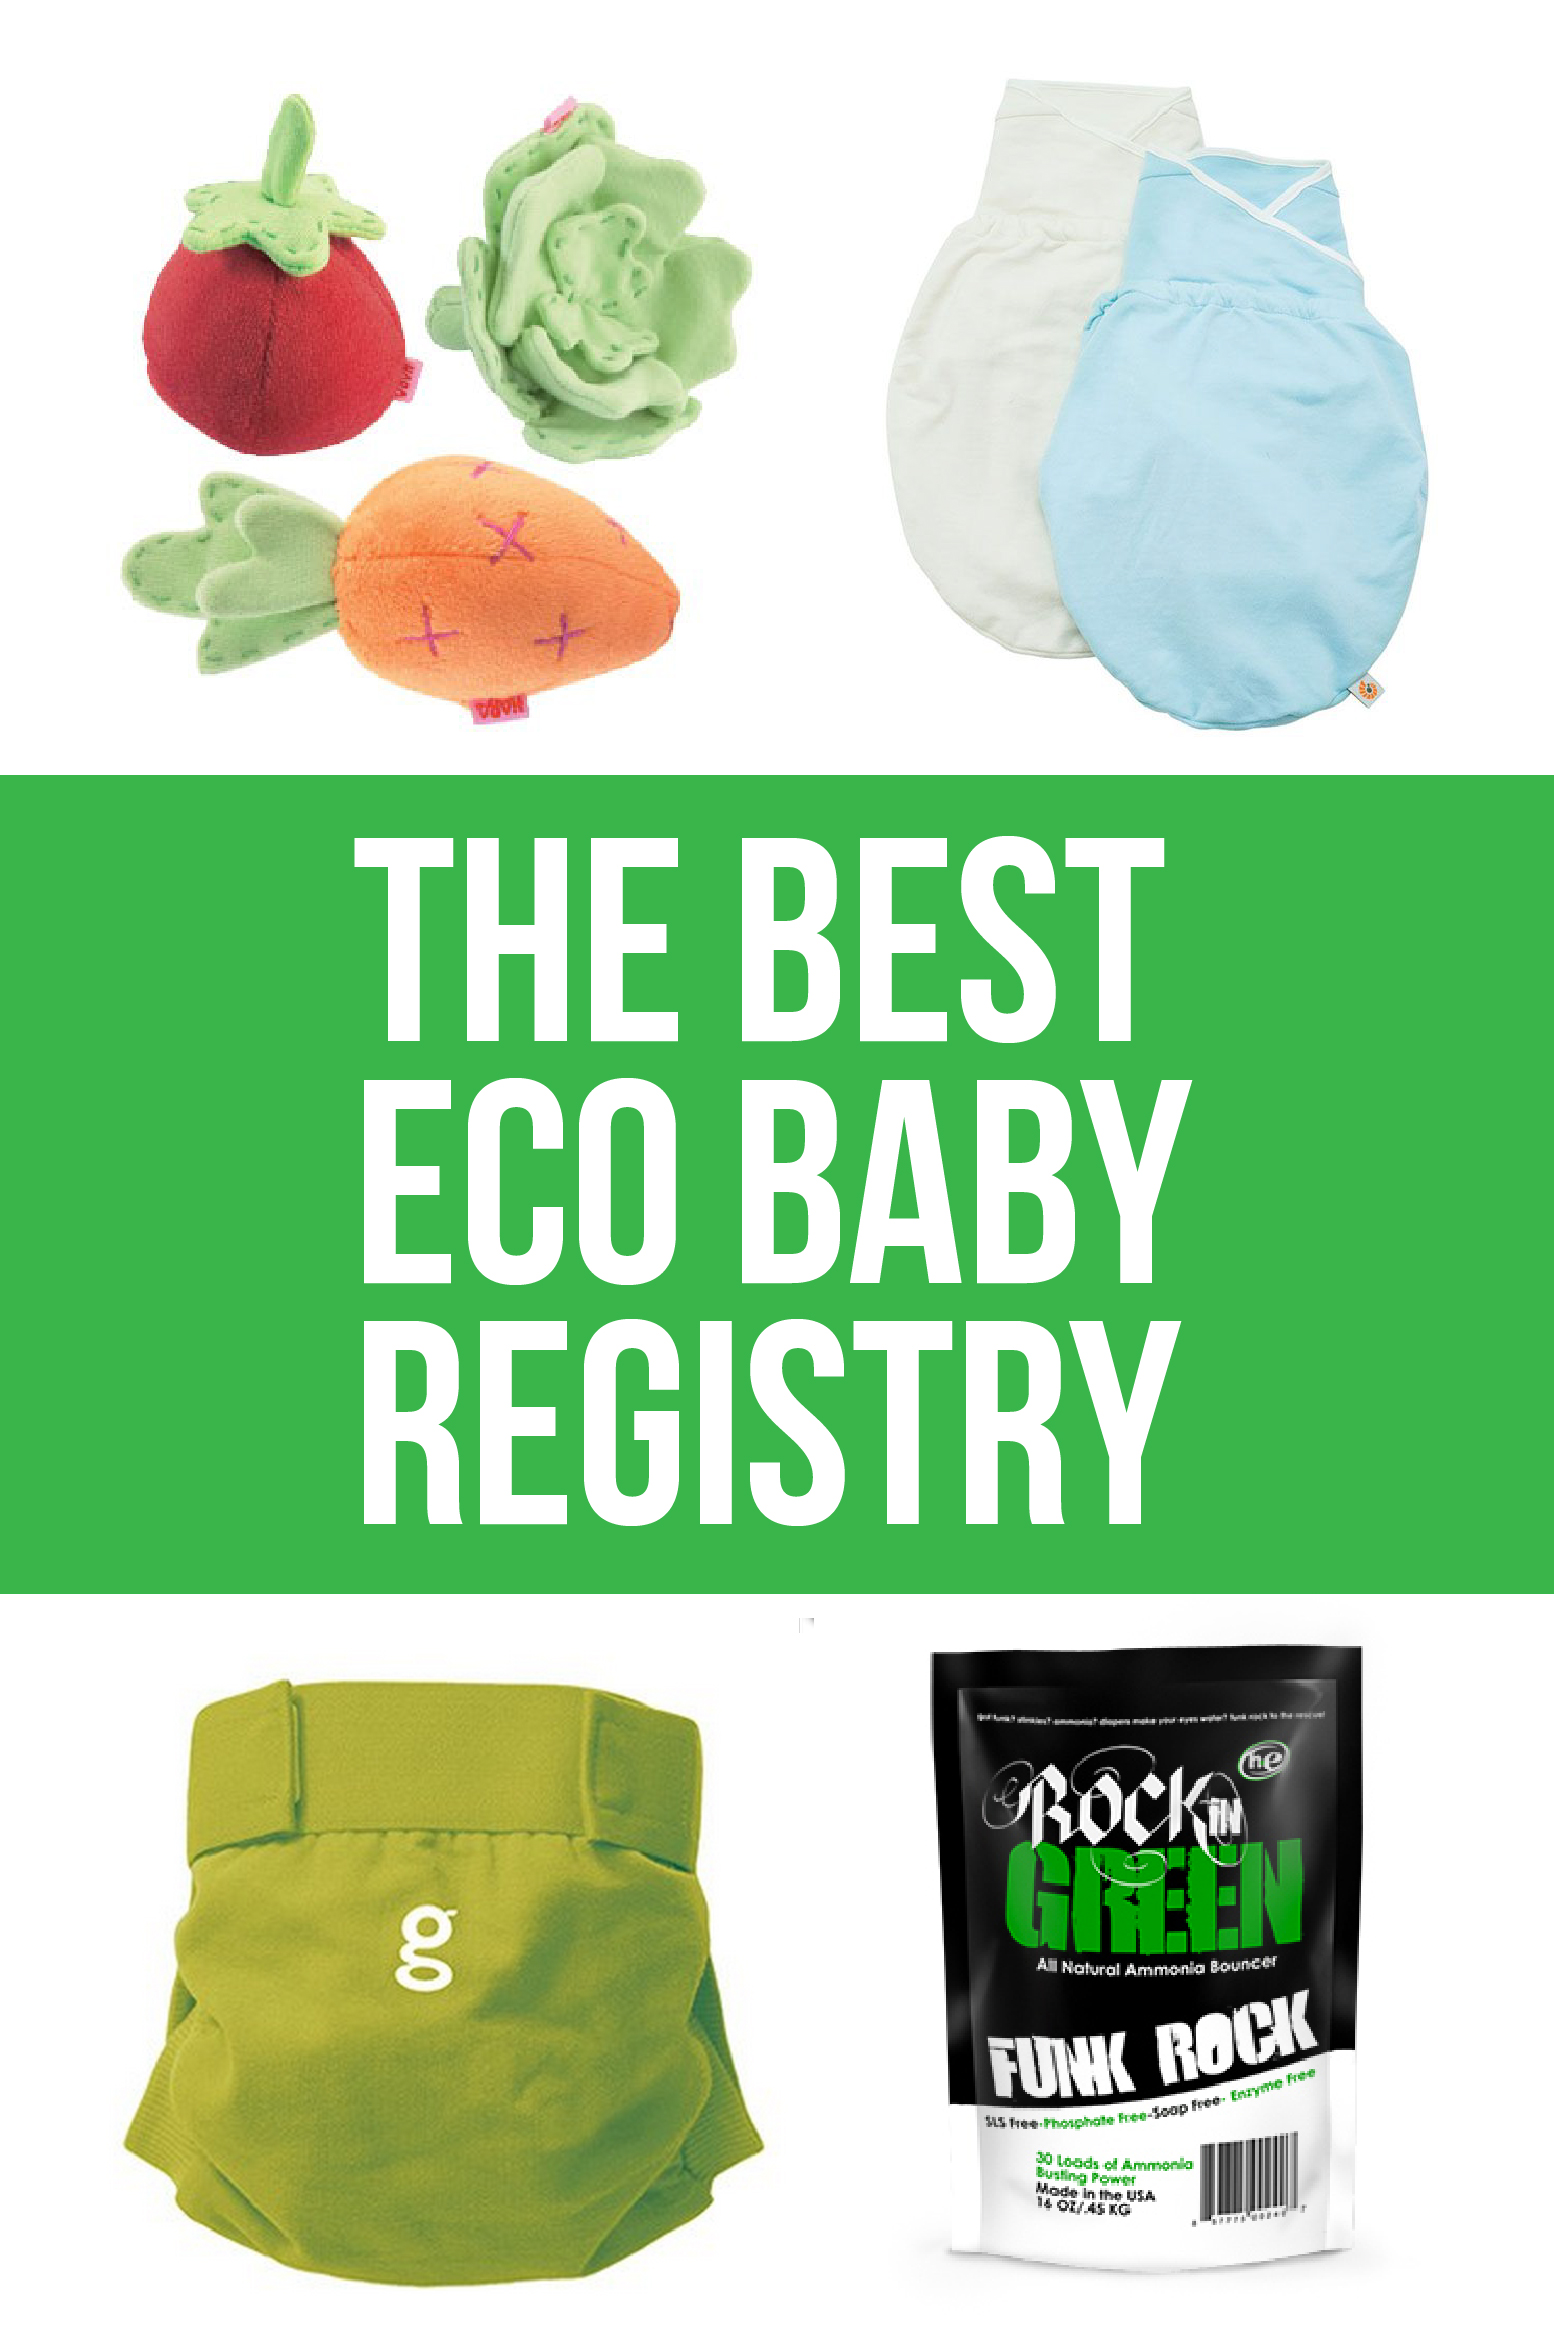 Win the best eco baby registry! Easy entry here. Ends 8/22/14.